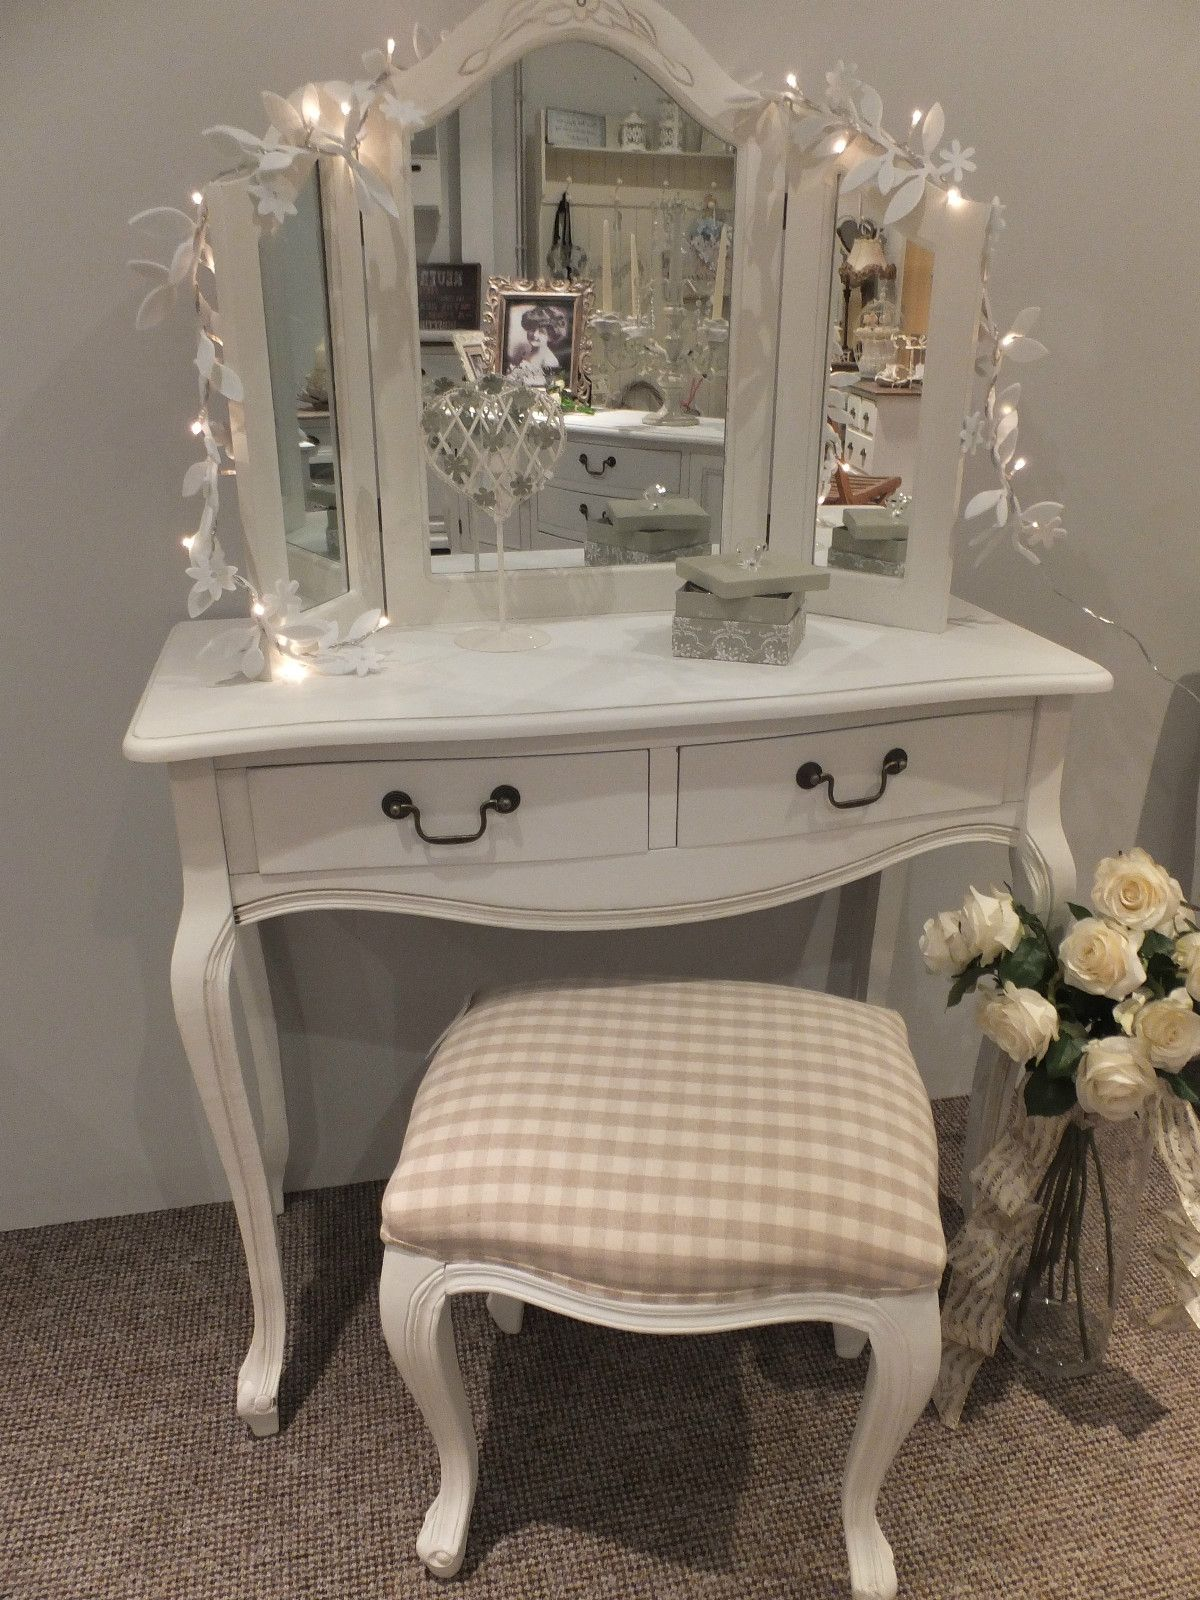 Who Would Not Love Having A Dressing Table In Your House Or Wardrobe You Can See More Inspirati Shabby Chic Dresser White Dressing Tables Shabby Chic Bathroom